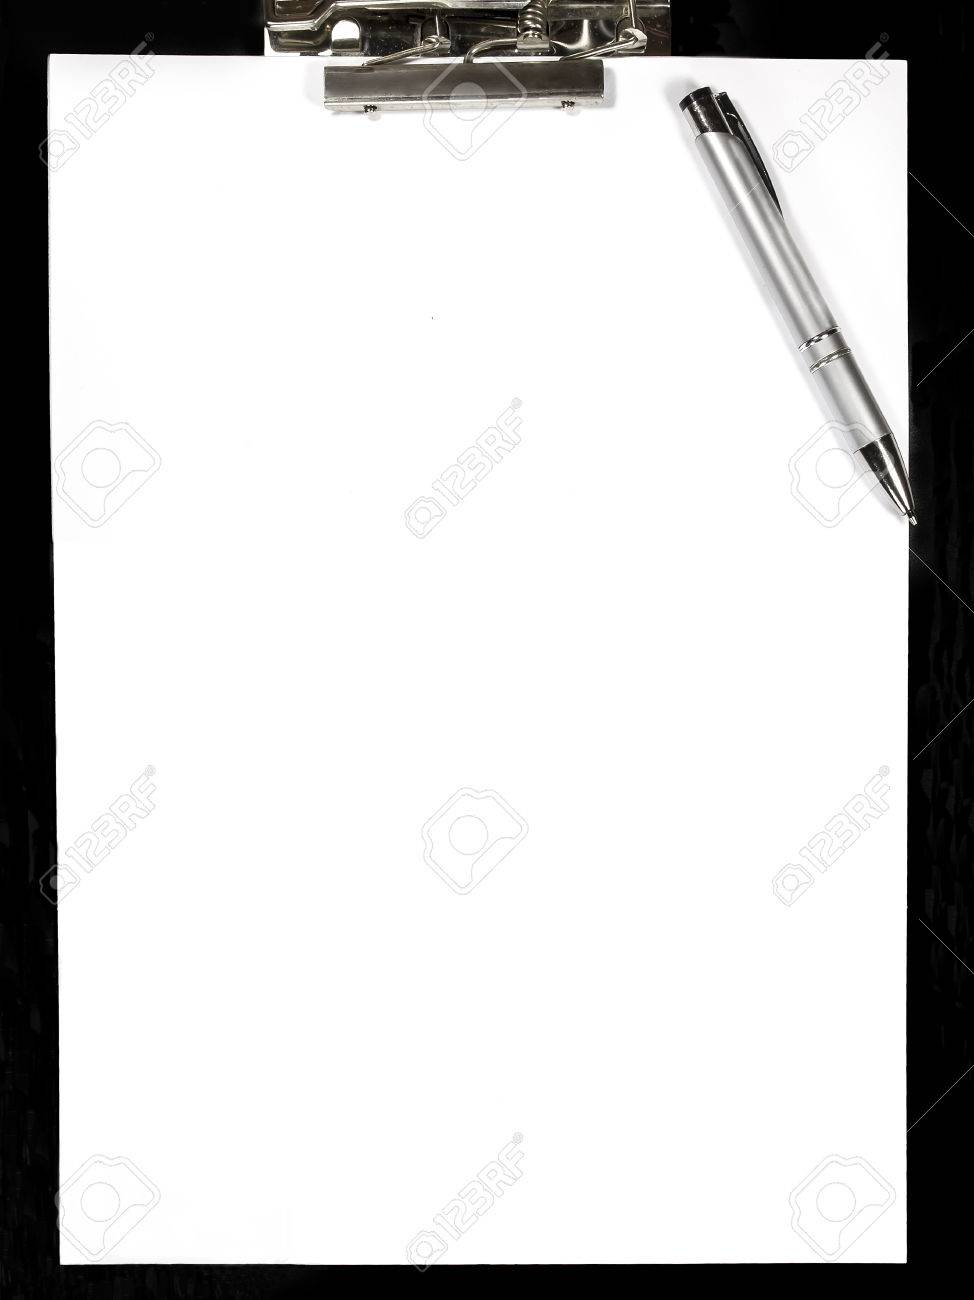 Image result for blank page